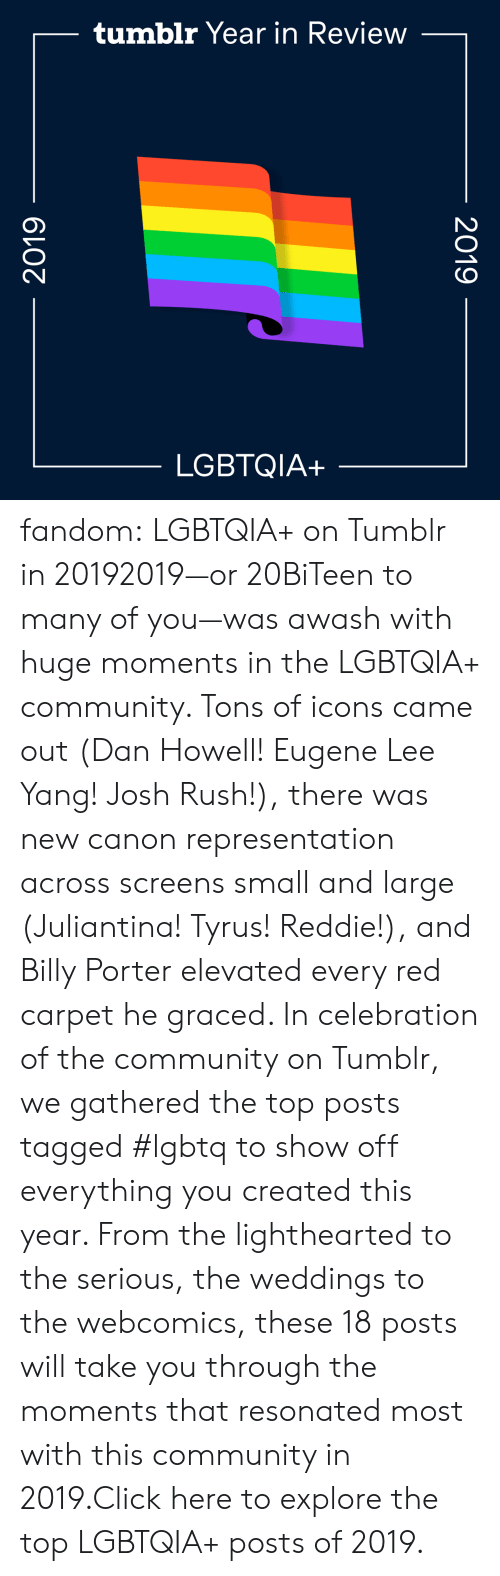 Screens: tumblr Year in Review  LGBTQIA+  2019  2019 fandom:  LGBTQIA+ on Tumblr in 20192019—or 20BiTeen to many of you—was awash with huge moments in the LGBTQIA+ community. Tons of icons came out (Dan Howell! Eugene Lee Yang! Josh Rush!), there was new canon representation across screens small and large (Juliantina! Tyrus! Reddie!), and Billy Porter elevated every red carpet he graced. In celebration of the community on Tumblr, we gathered the top posts tagged #lgbtq to show off everything you created this year. From the lighthearted to the serious, the weddings to the webcomics, these 18 posts will take you through the moments that resonated most with this community in 2019.Click here to explore the top LGBTQIA+ posts of 2019.